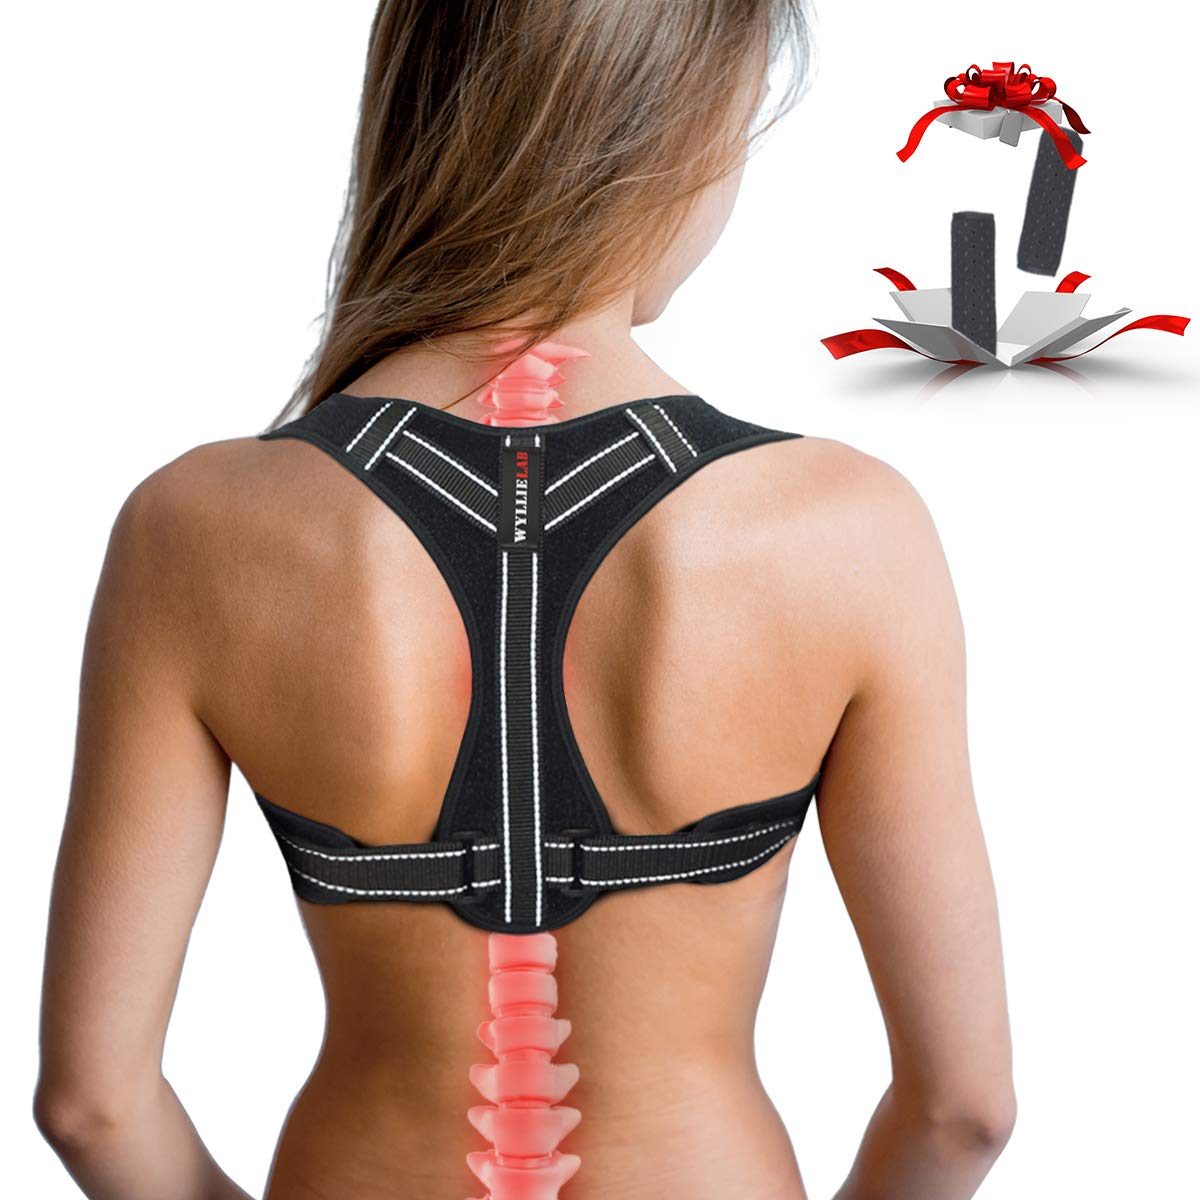 e0b674075ffff Amazon.com  4well Posture Corrector for Women Men - Rounded ...